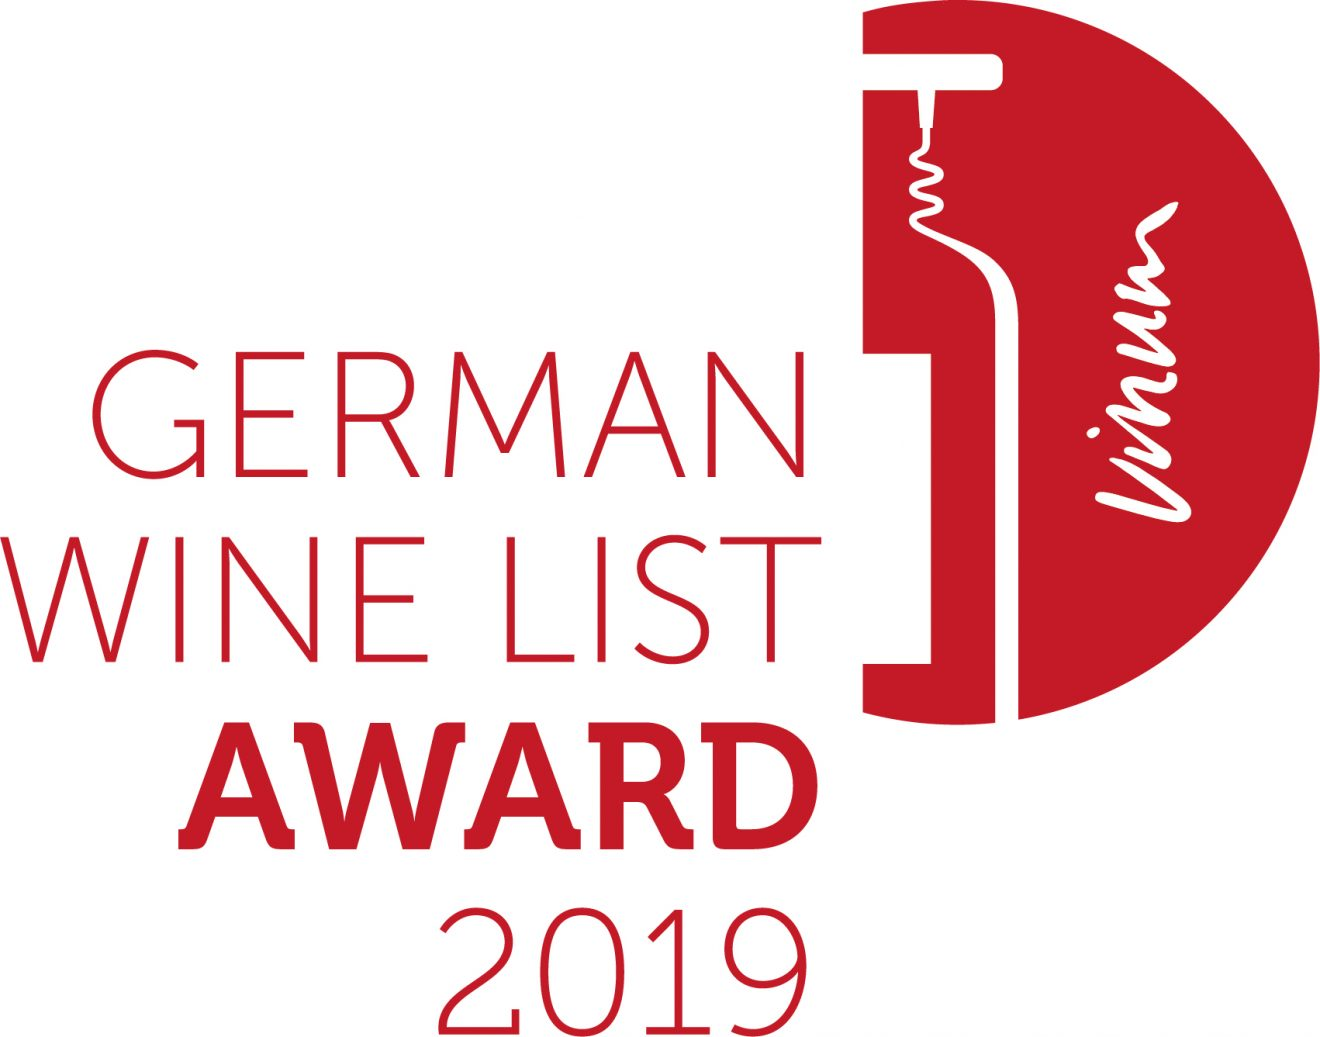 German Wine List Award 2019